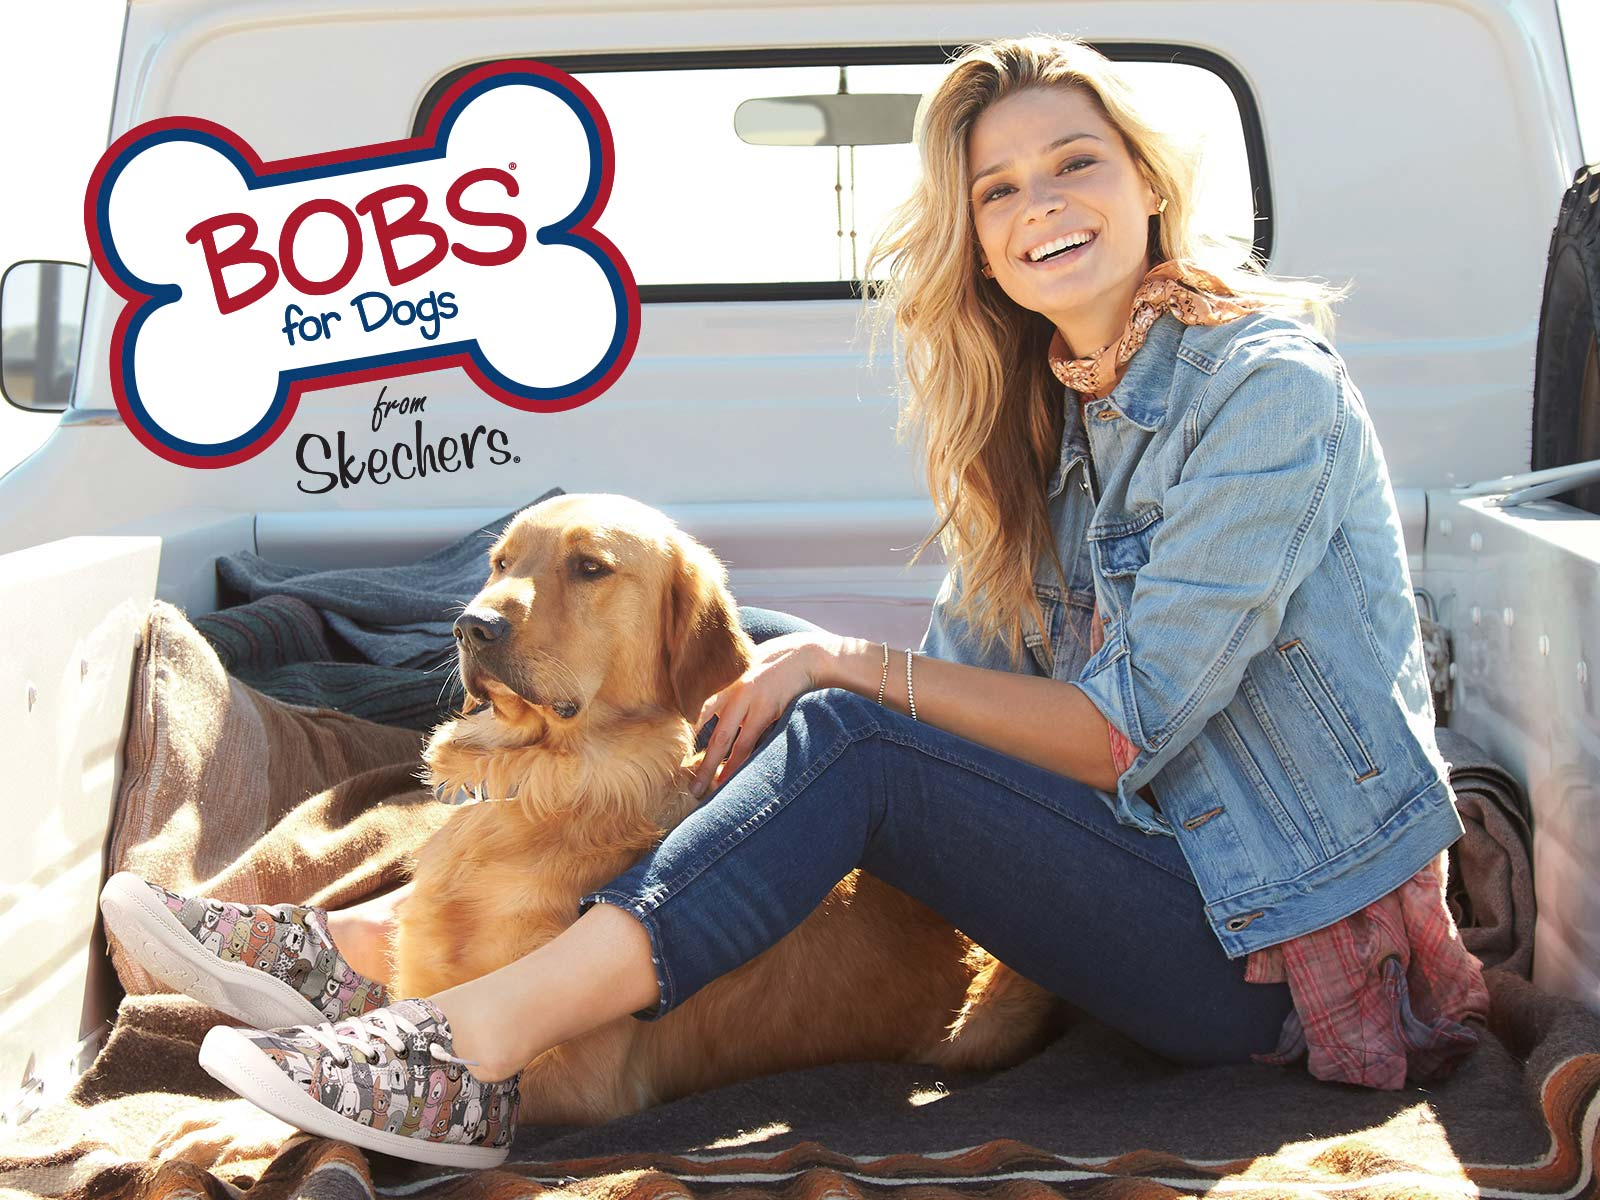 a gal wearing skechers bobs and her dog